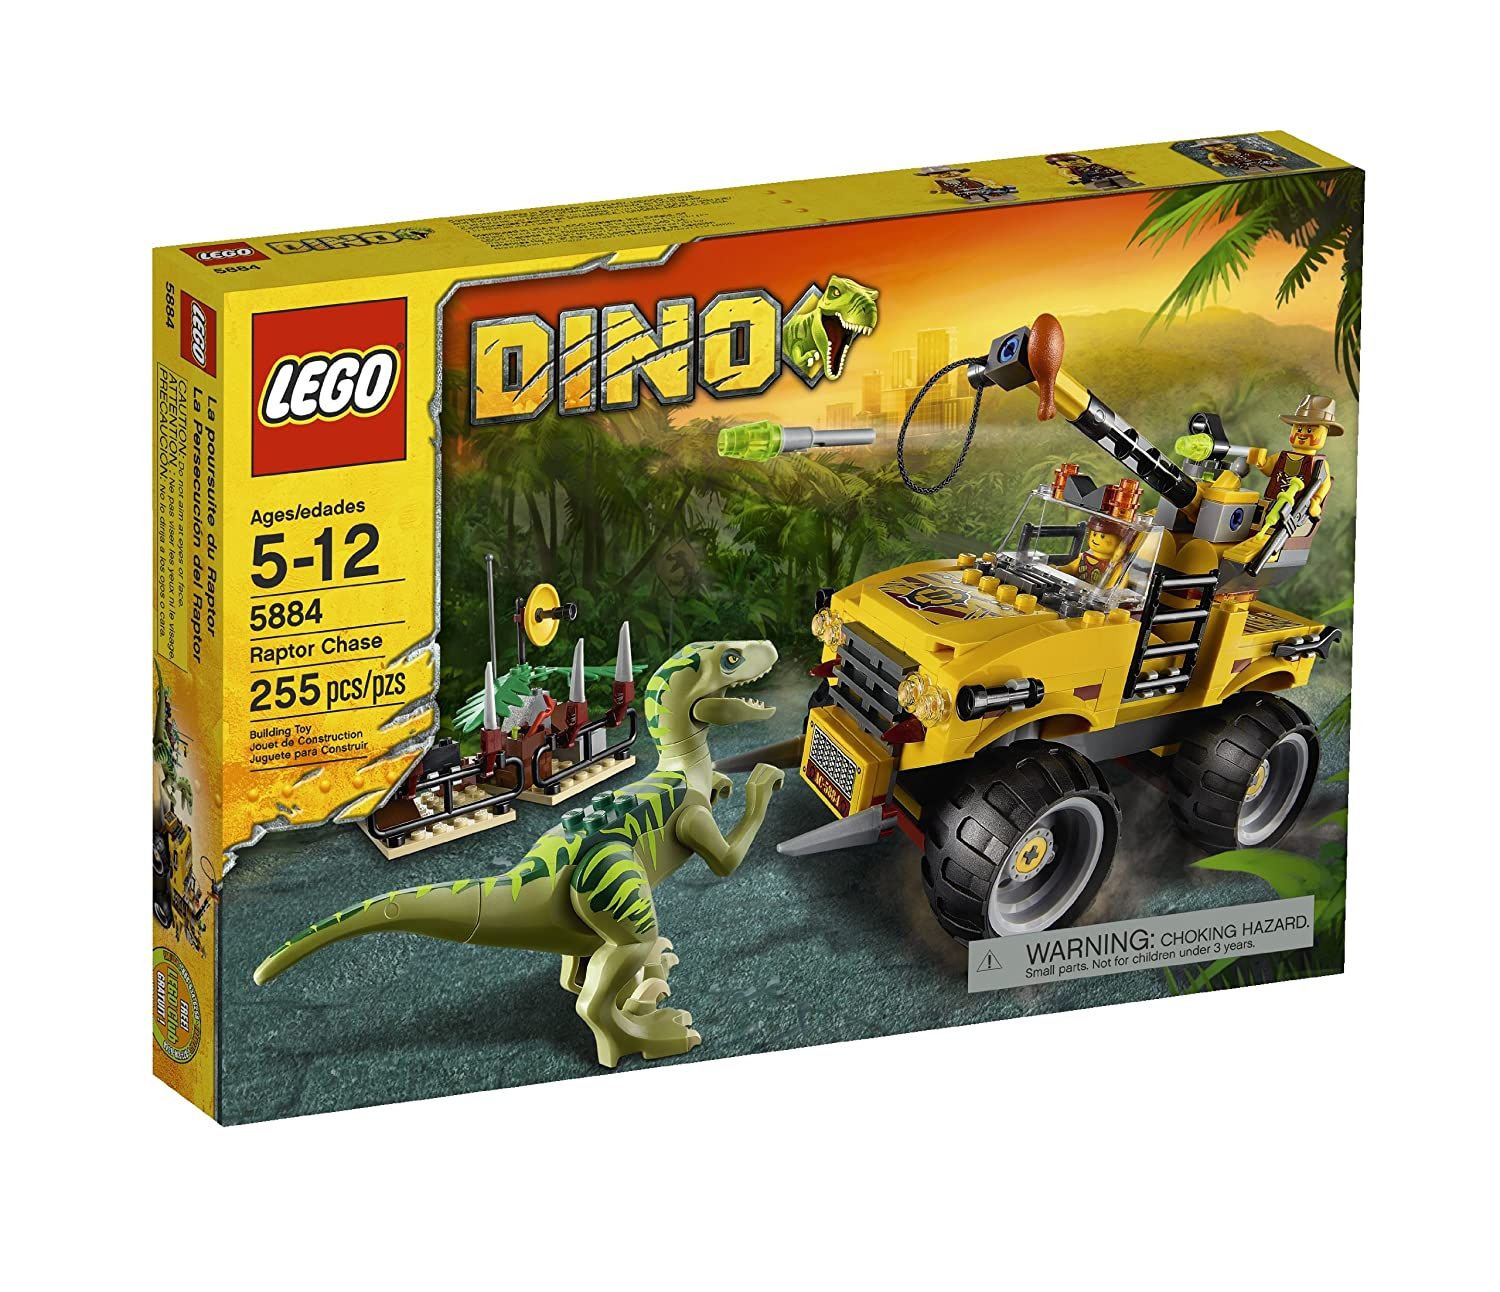 Top 8 Best Lego Dinosaurs Set Reviews in 2021 5